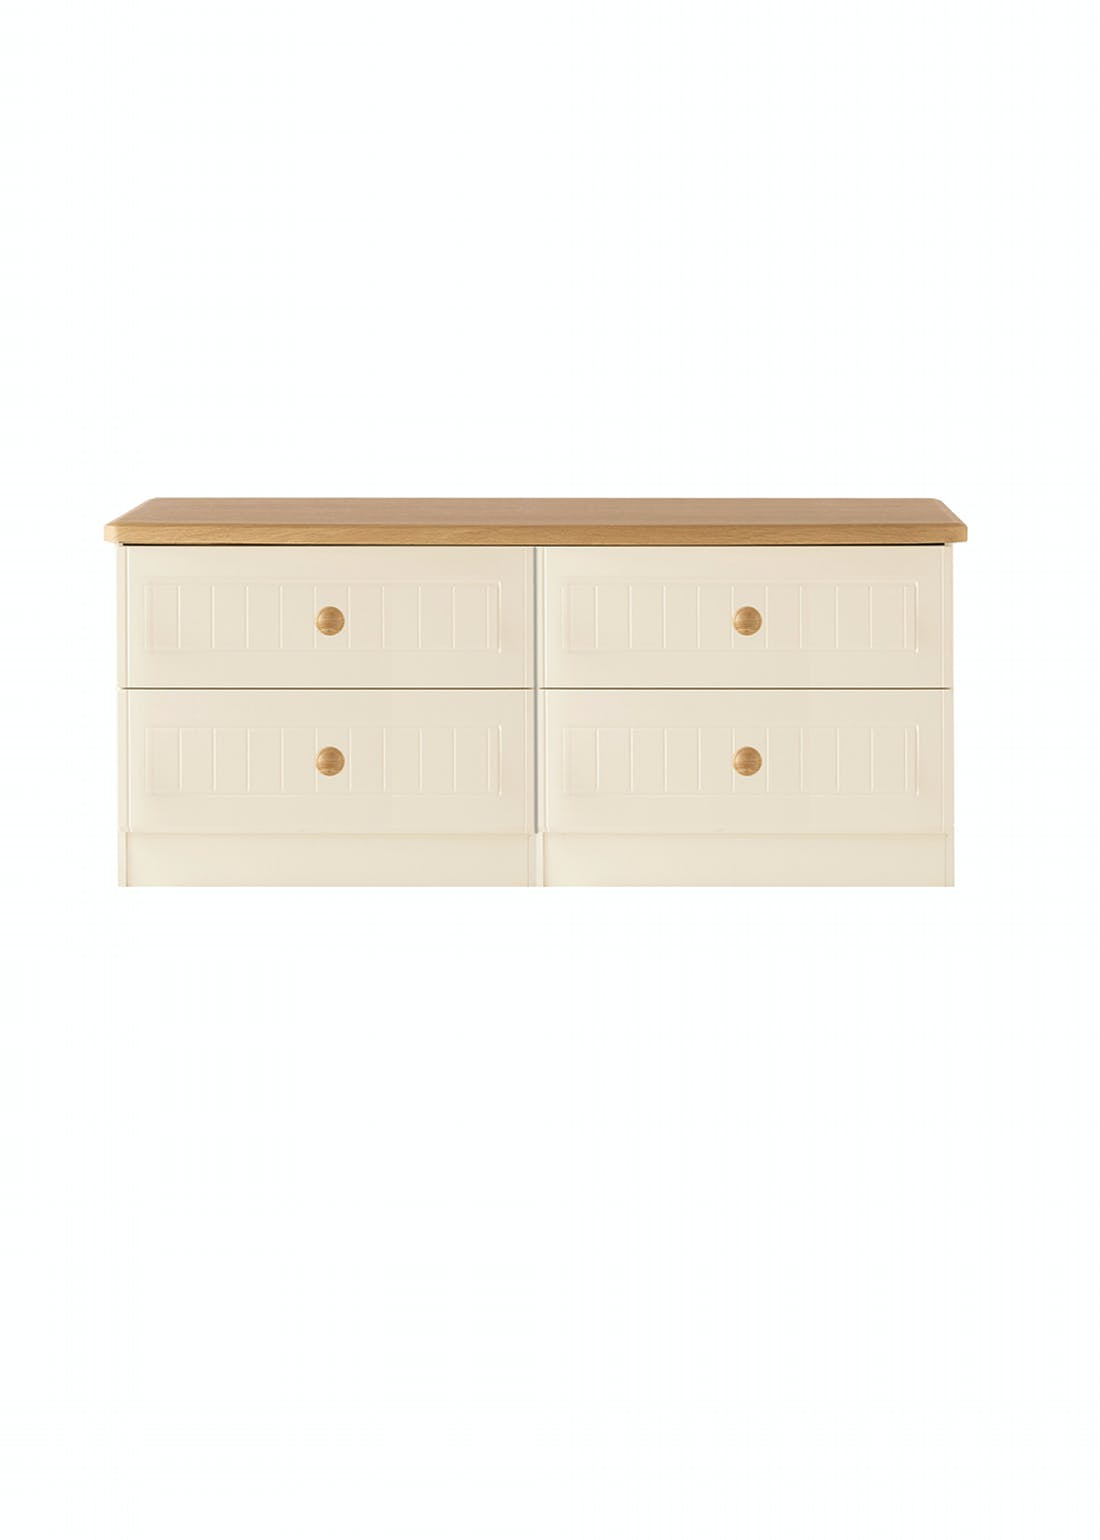 Swift Rimini 4 Drawer End of Bed Chest (50.5cm x 112cm x 41.5cm)